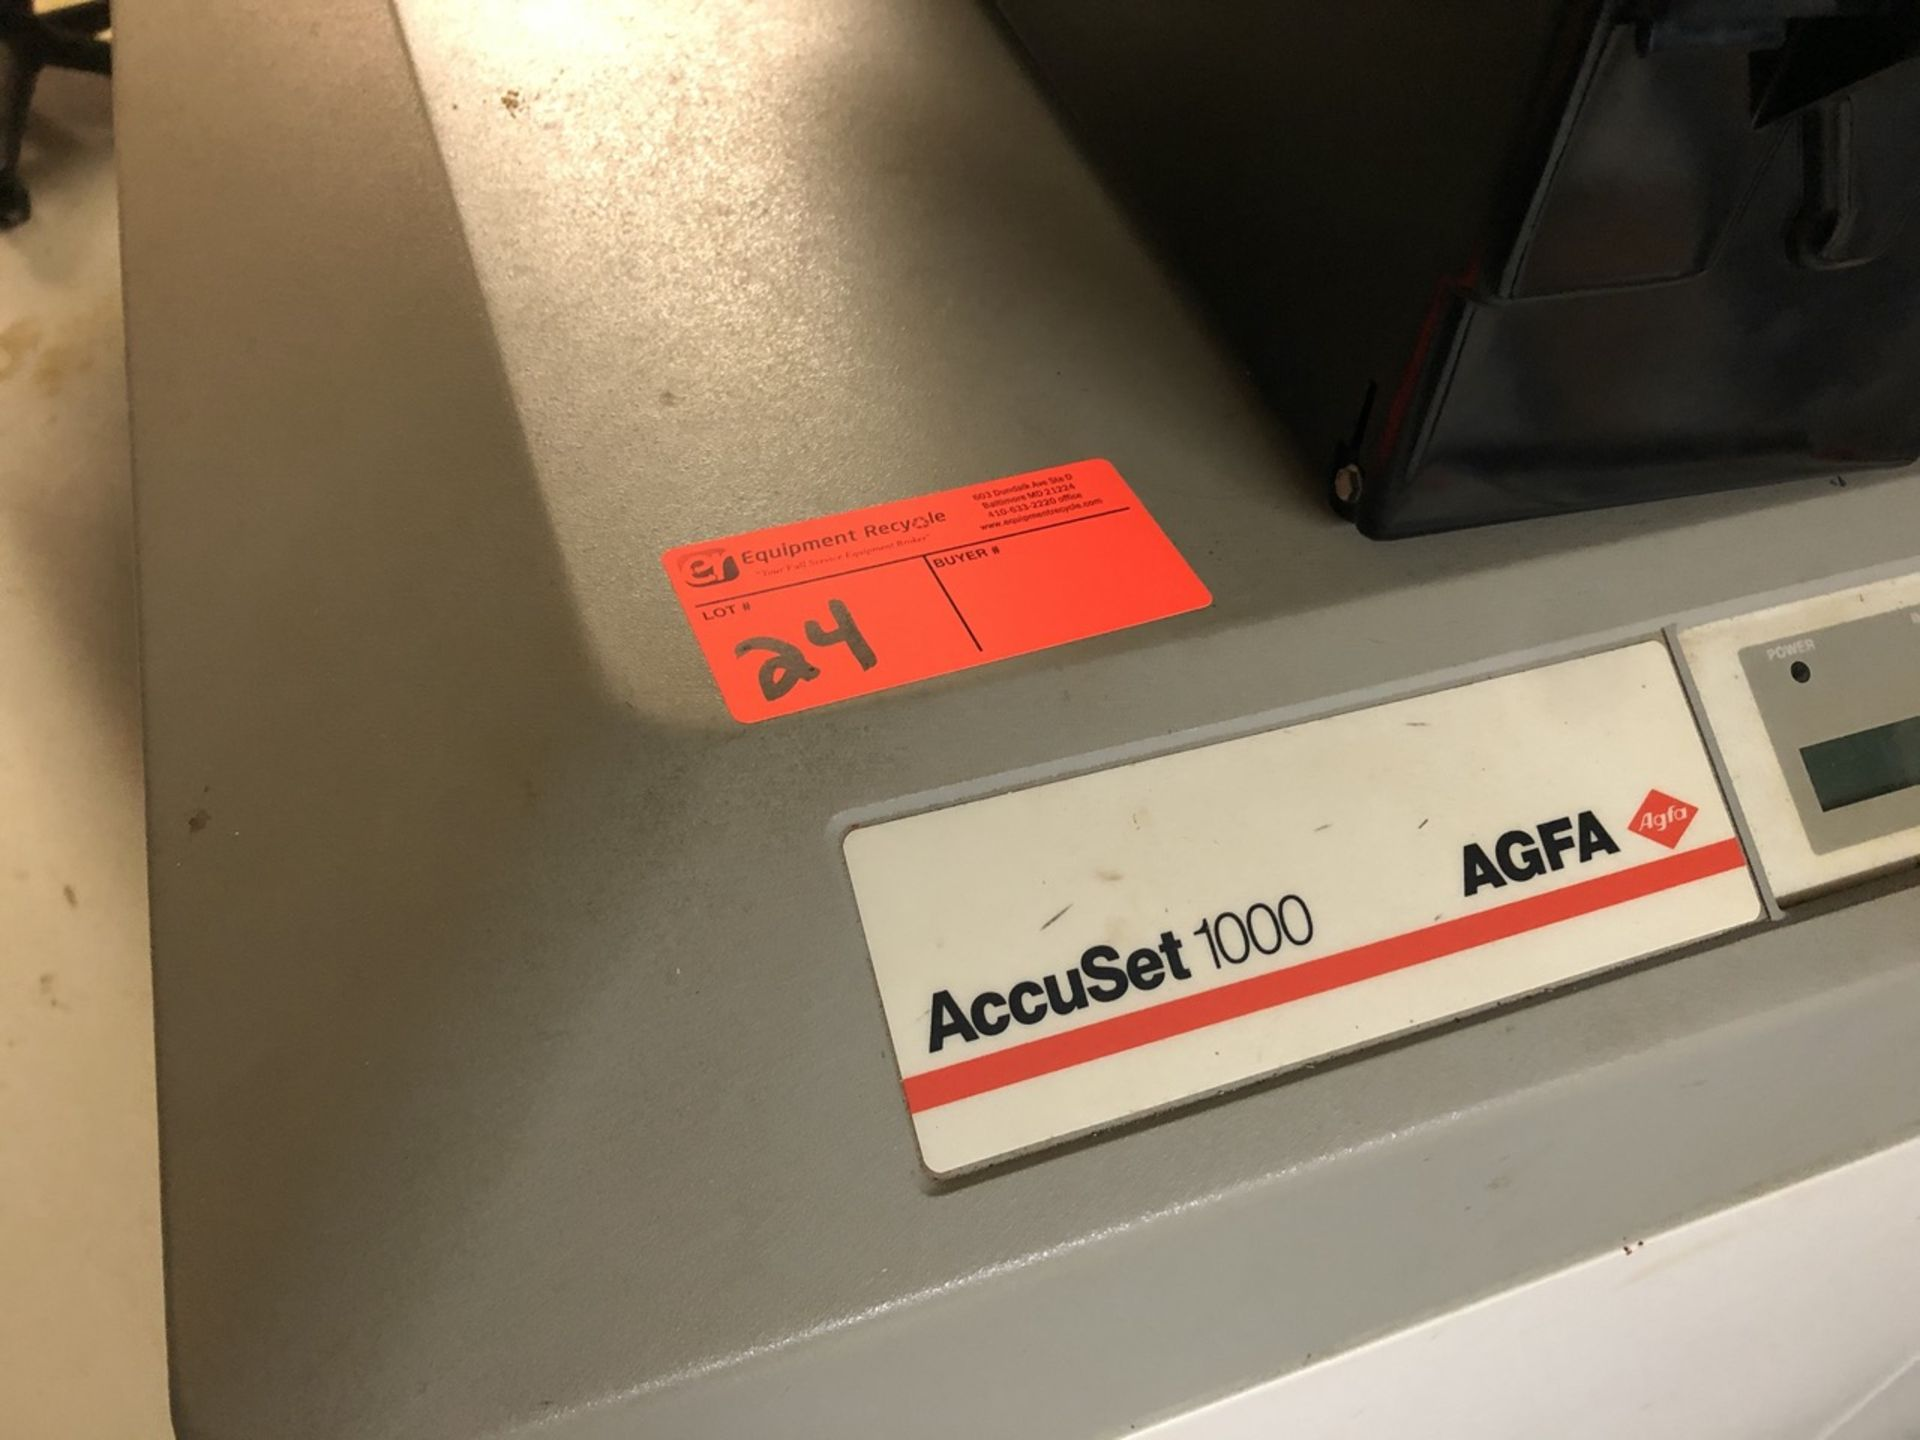 Lot 24 - Accuset 1000 AGFA For Parts Only